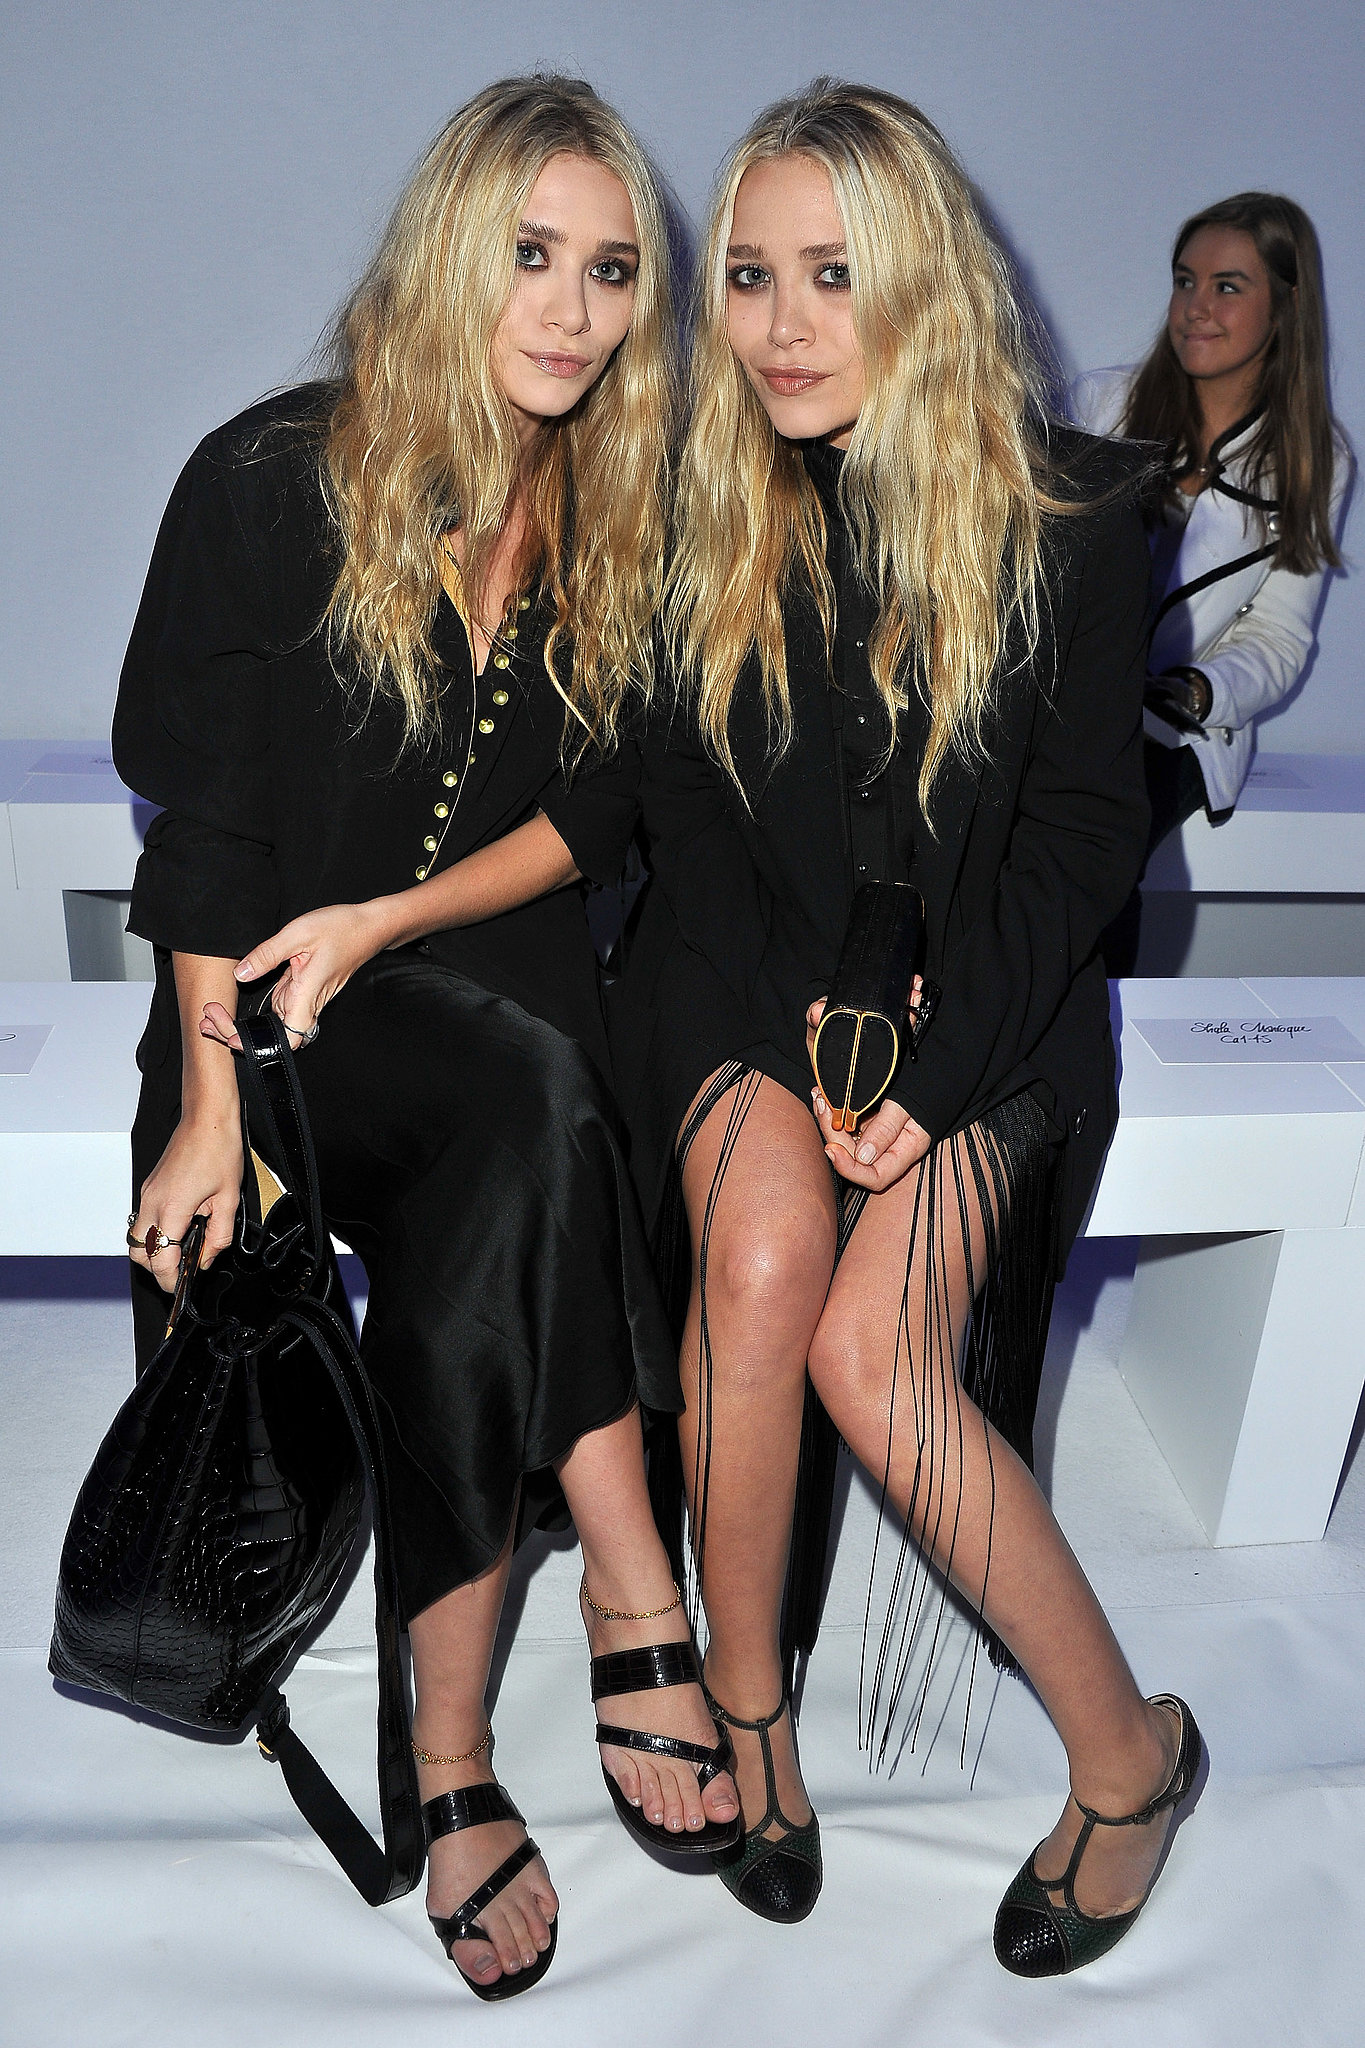 Twinning combo: The girls have mastered the art of monochromatic dressing as shown by this front-row look during Paris Fashion Week Spring/Summer 2012.  Ashley paired a puff-sleeved top with a silky maxi skirt and leather sandals. Mary-Kate buttoned up in a black oxford shirt, fringed skirt, and tuxedo jacket.